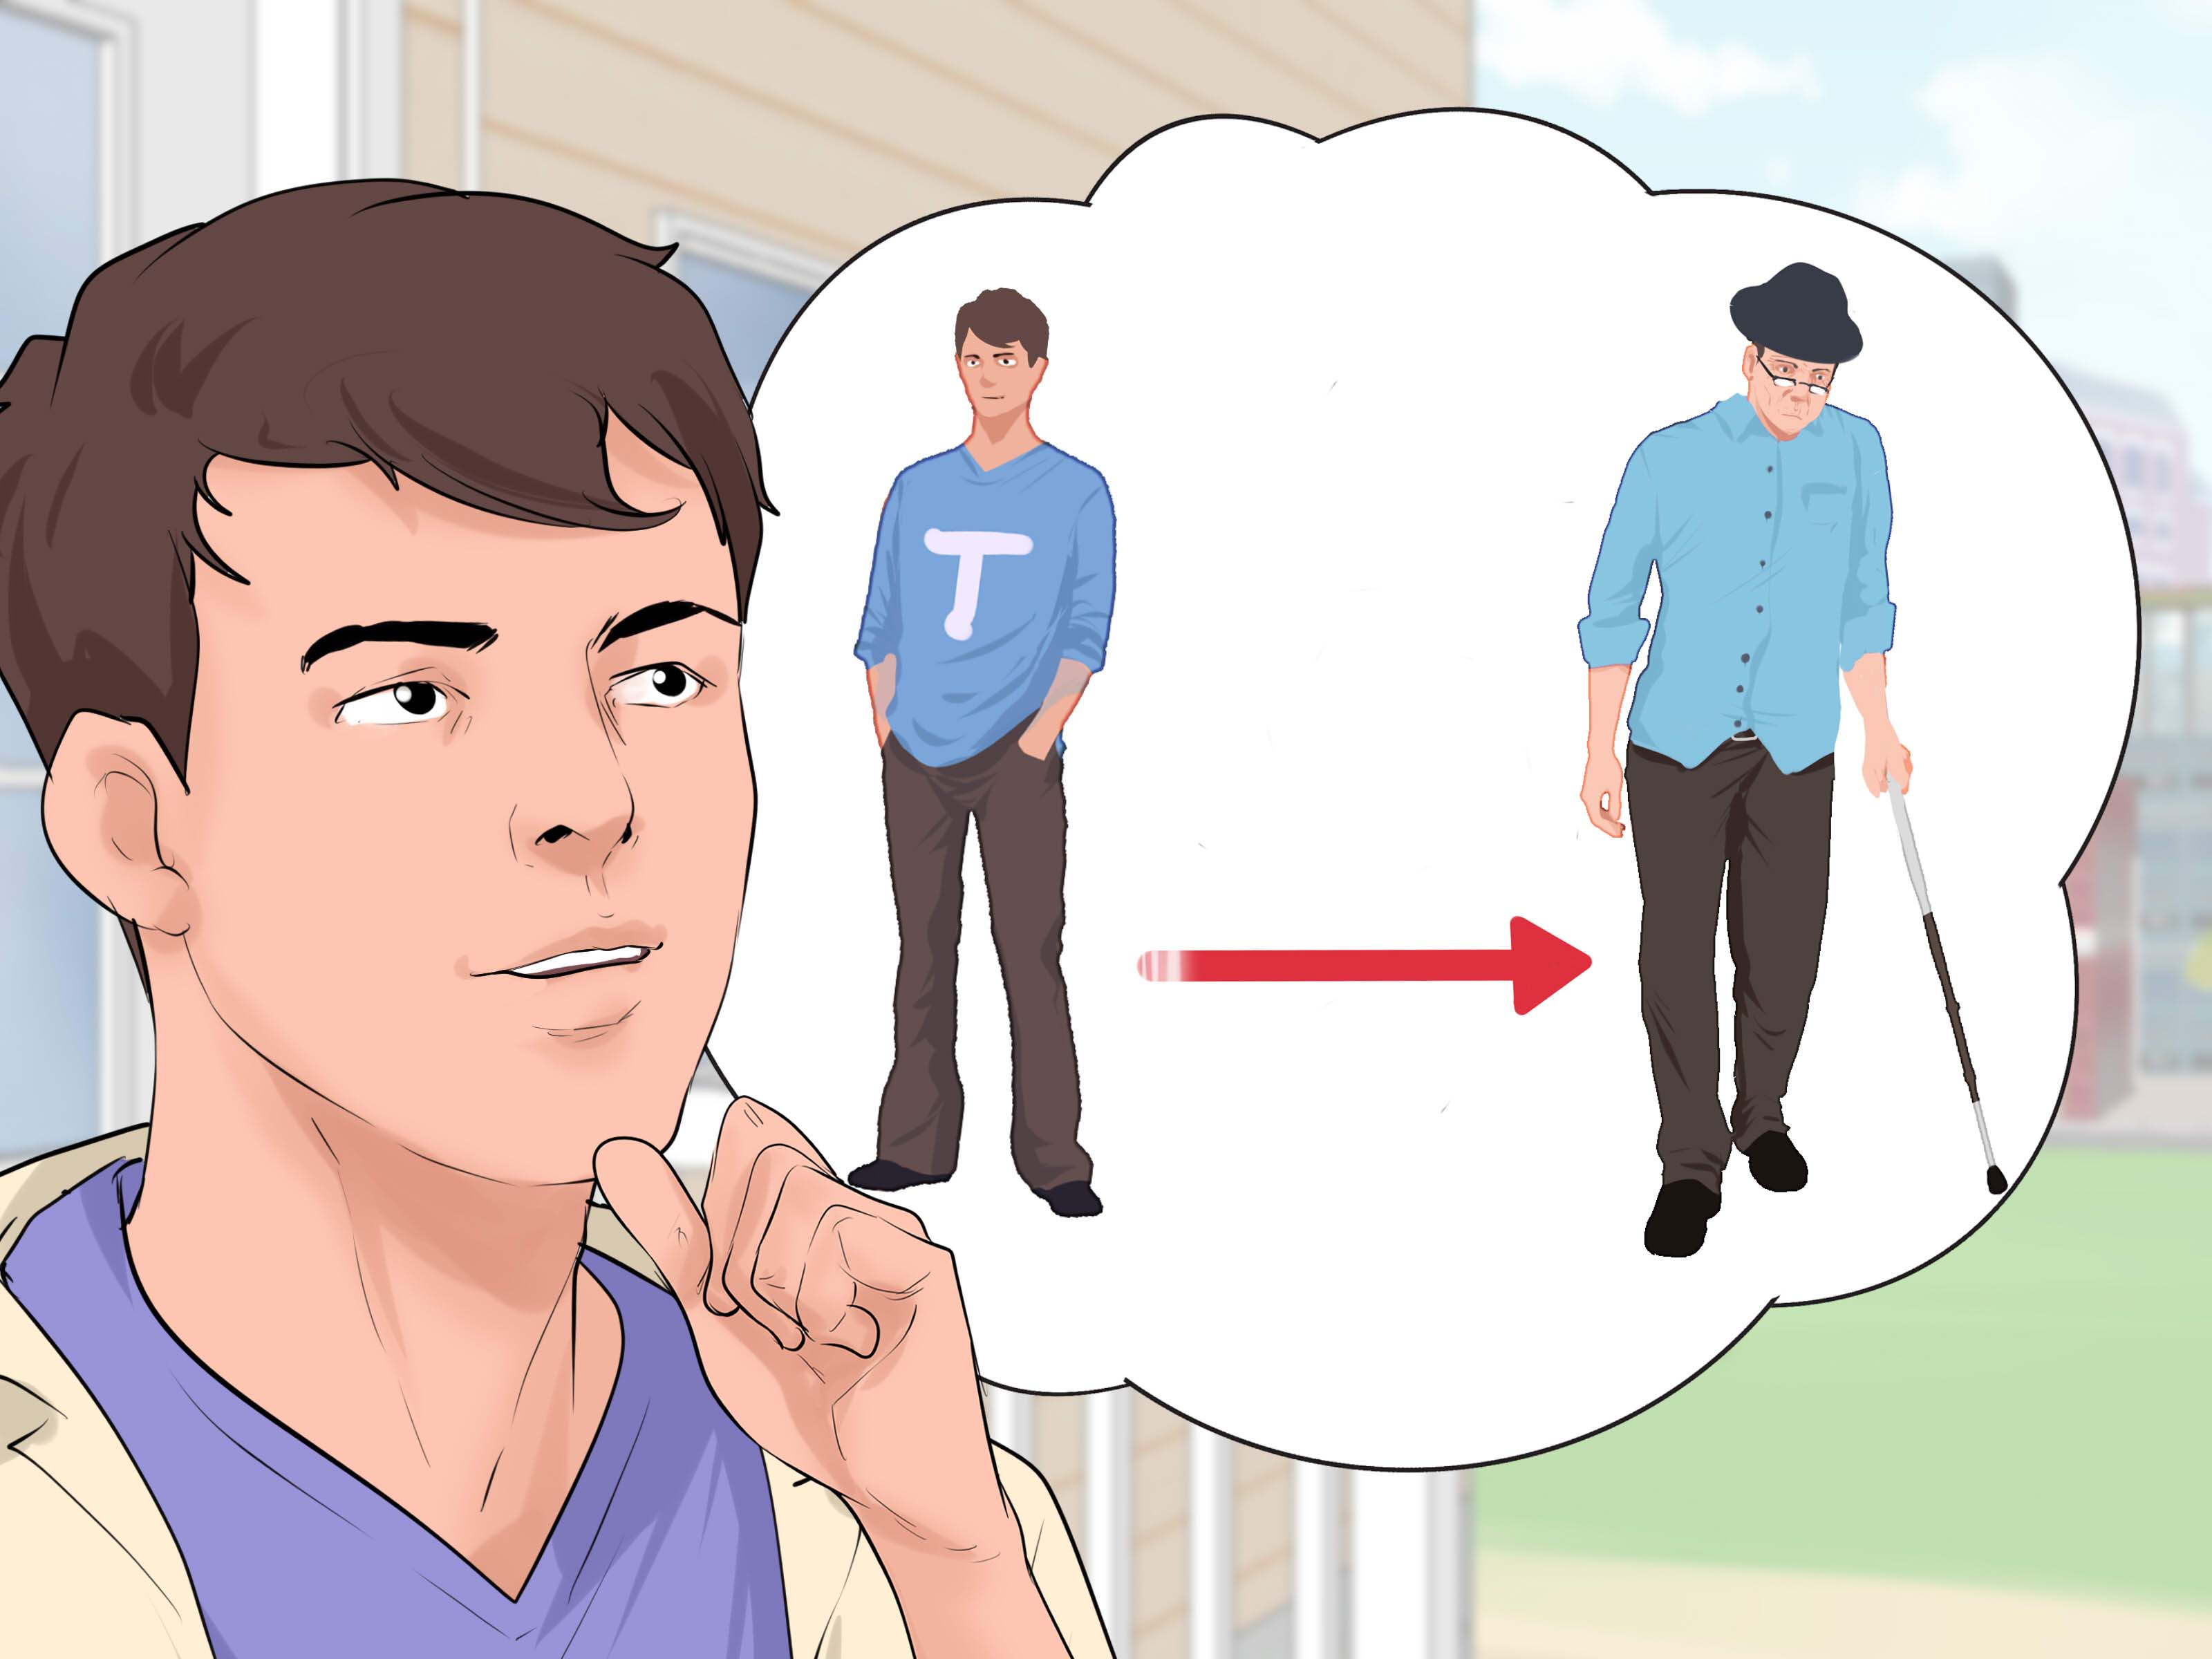 How To Cope With Your Maturing Body Males 13 Steps